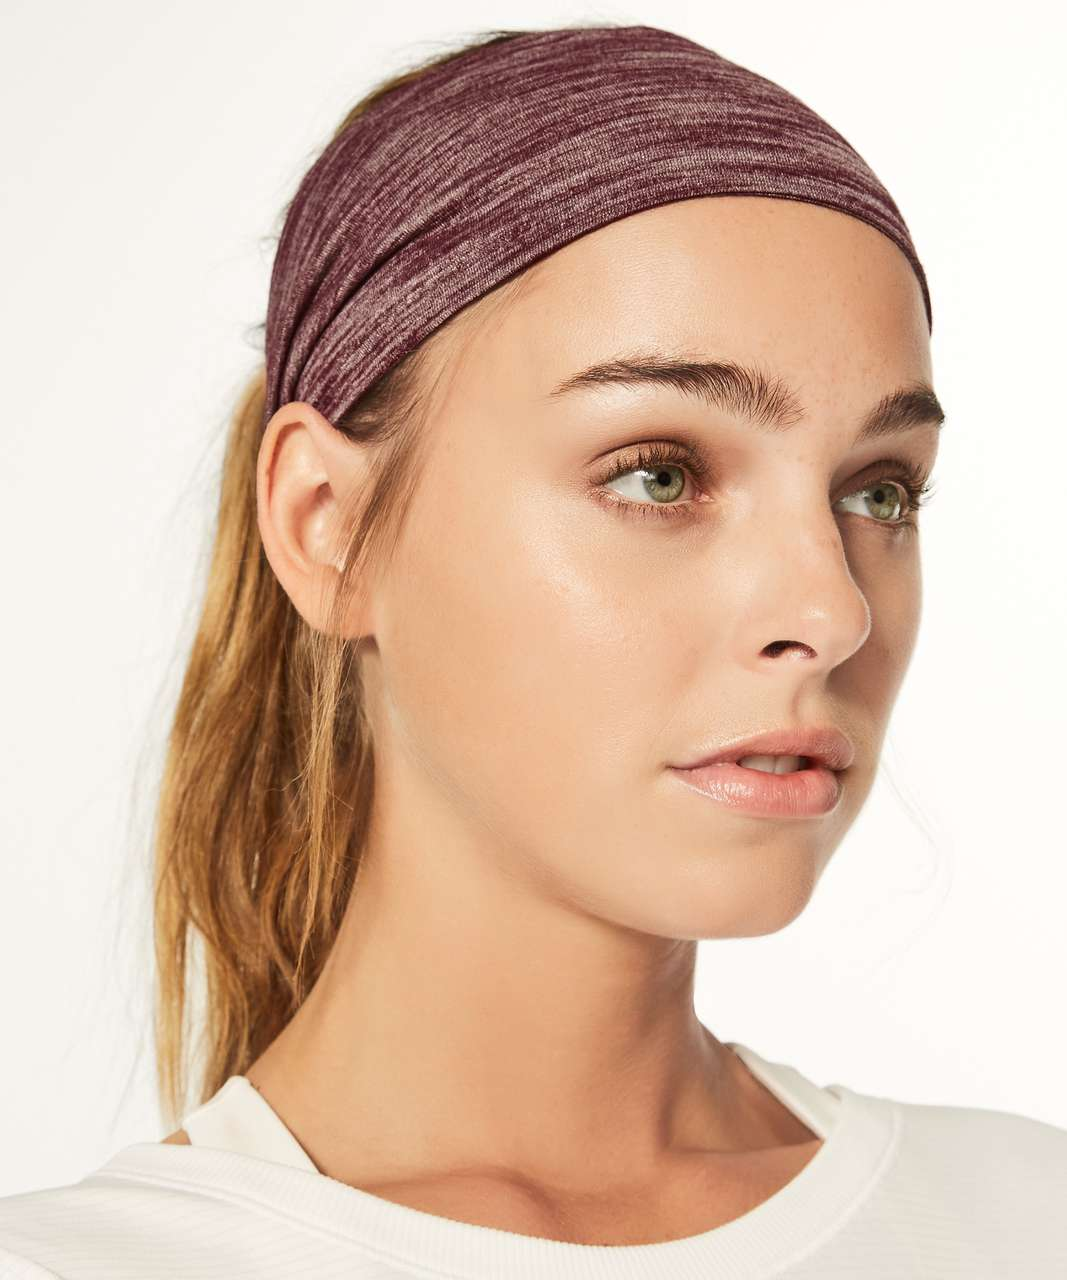 481cc1be80f Lululemon Fringe Fighter Headband - Heathered Garnet - lulu fanatics